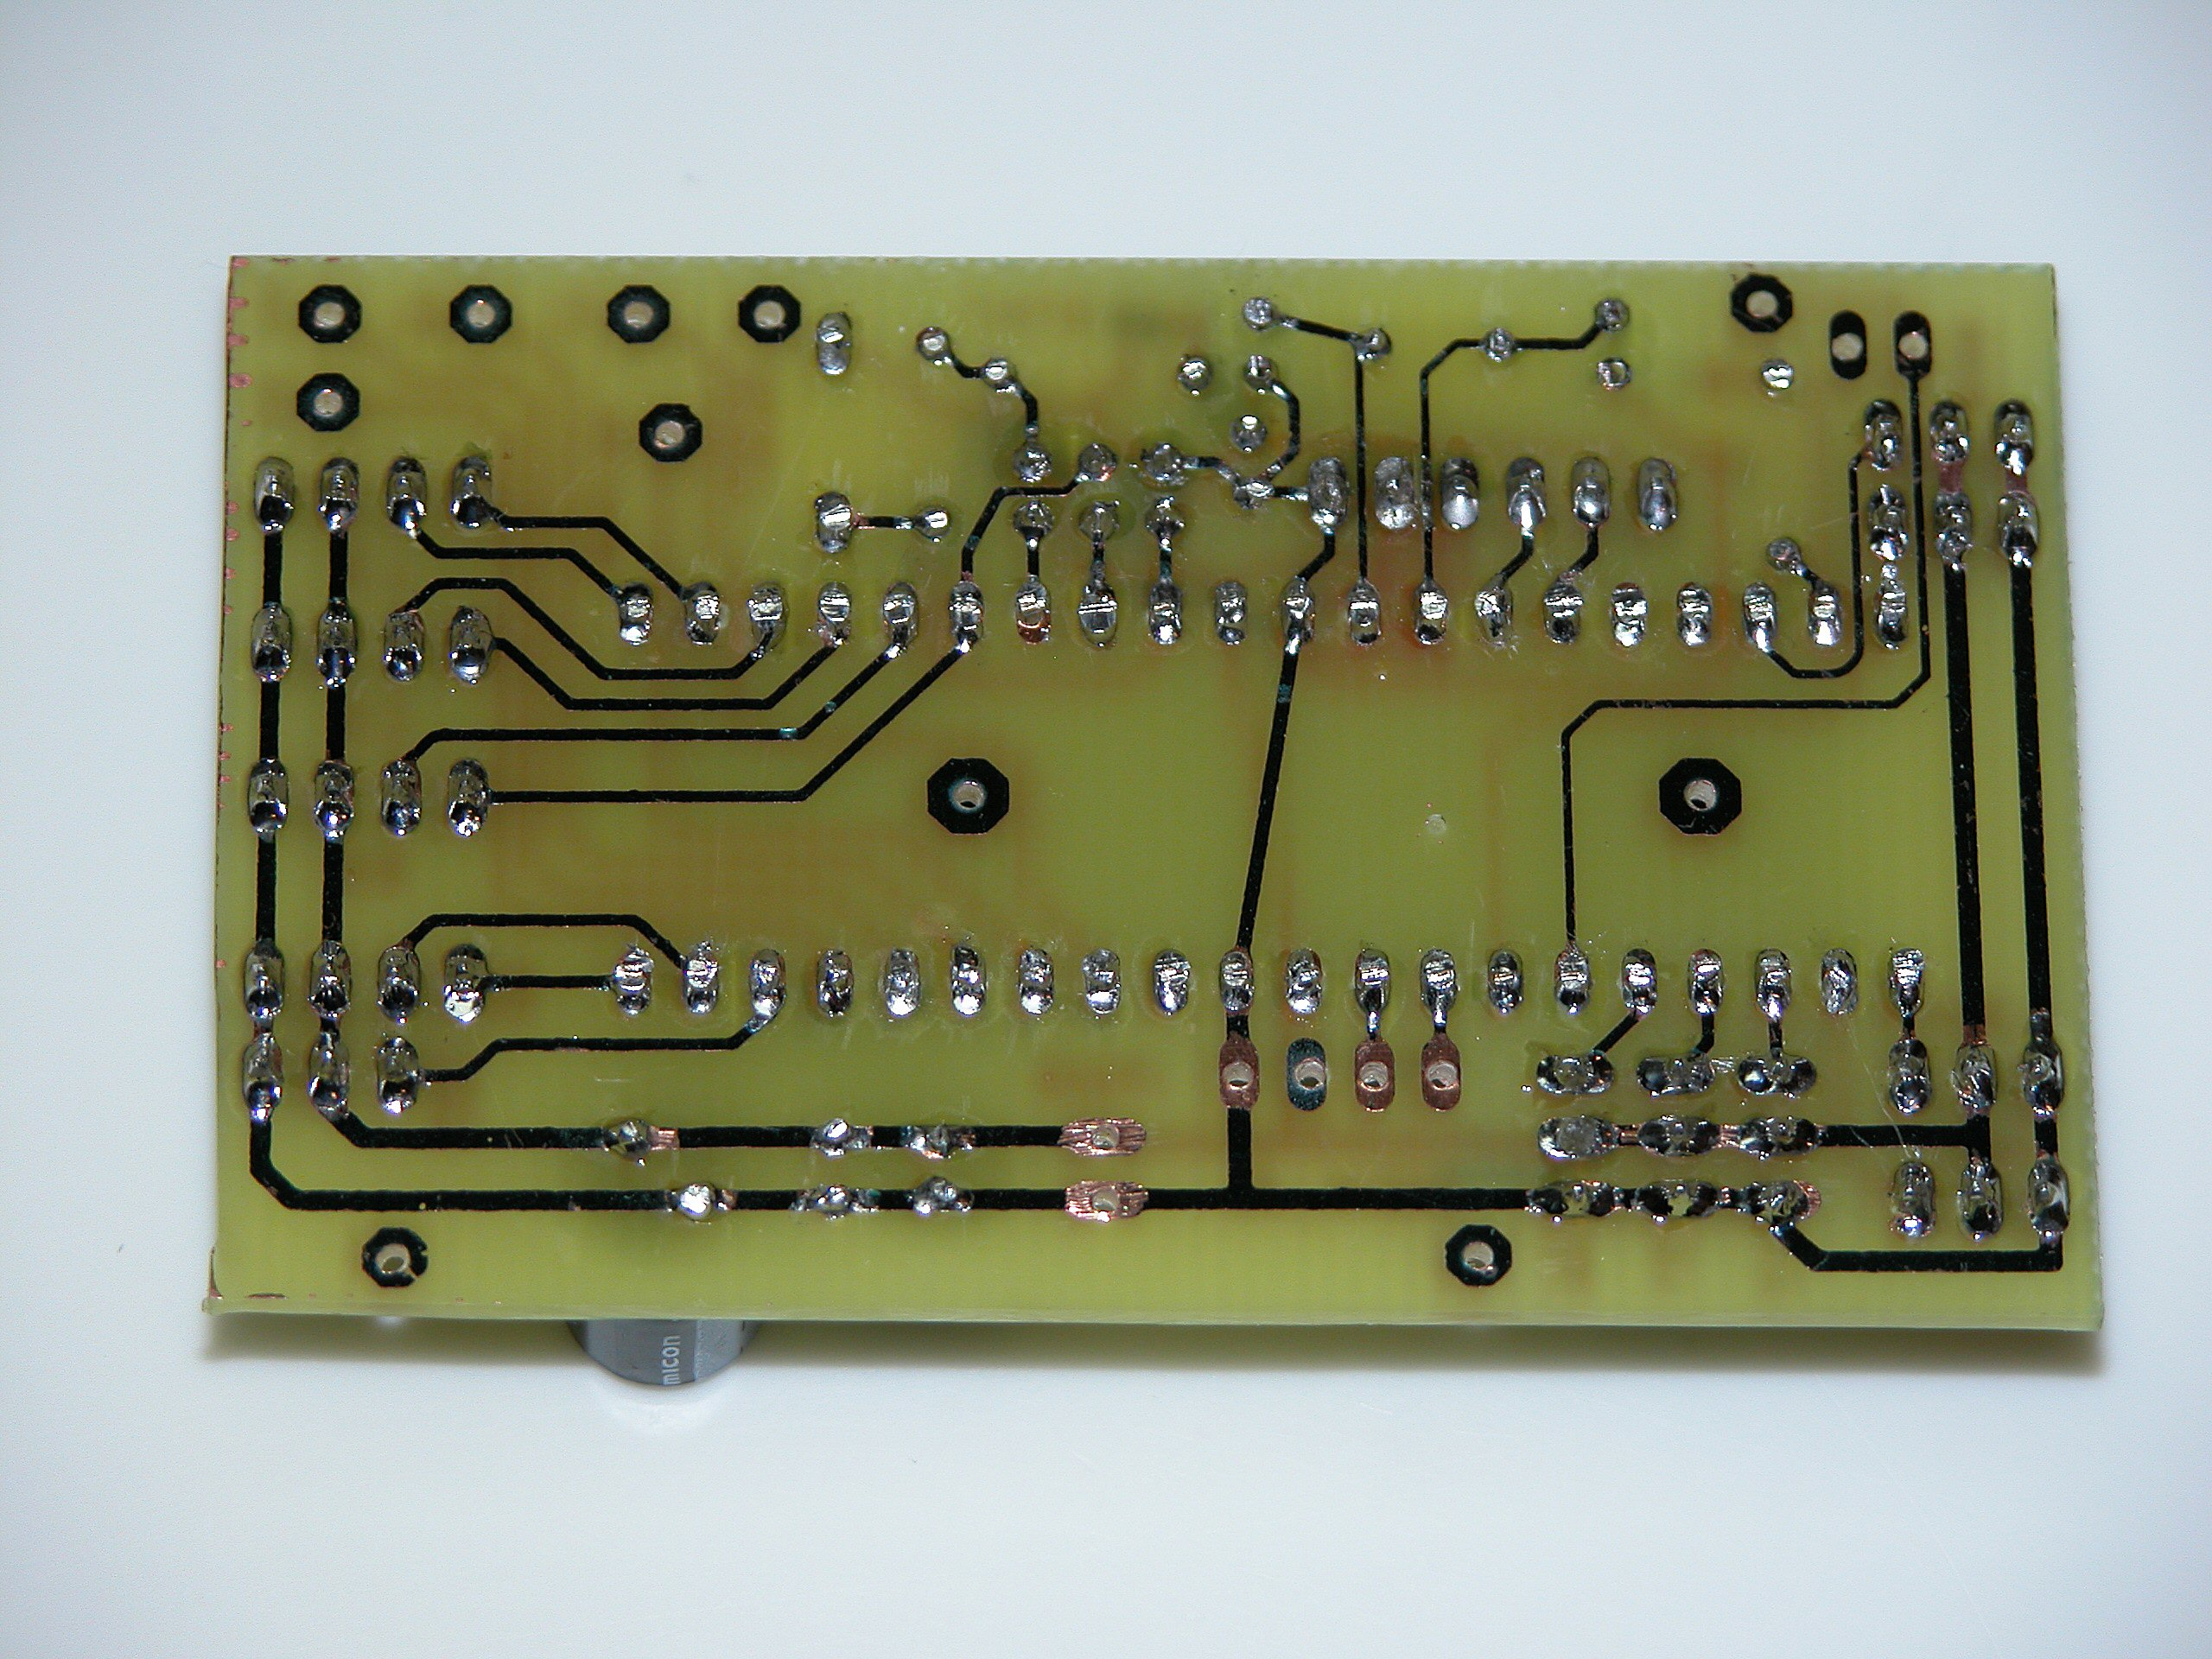 Picture of Completed PCB